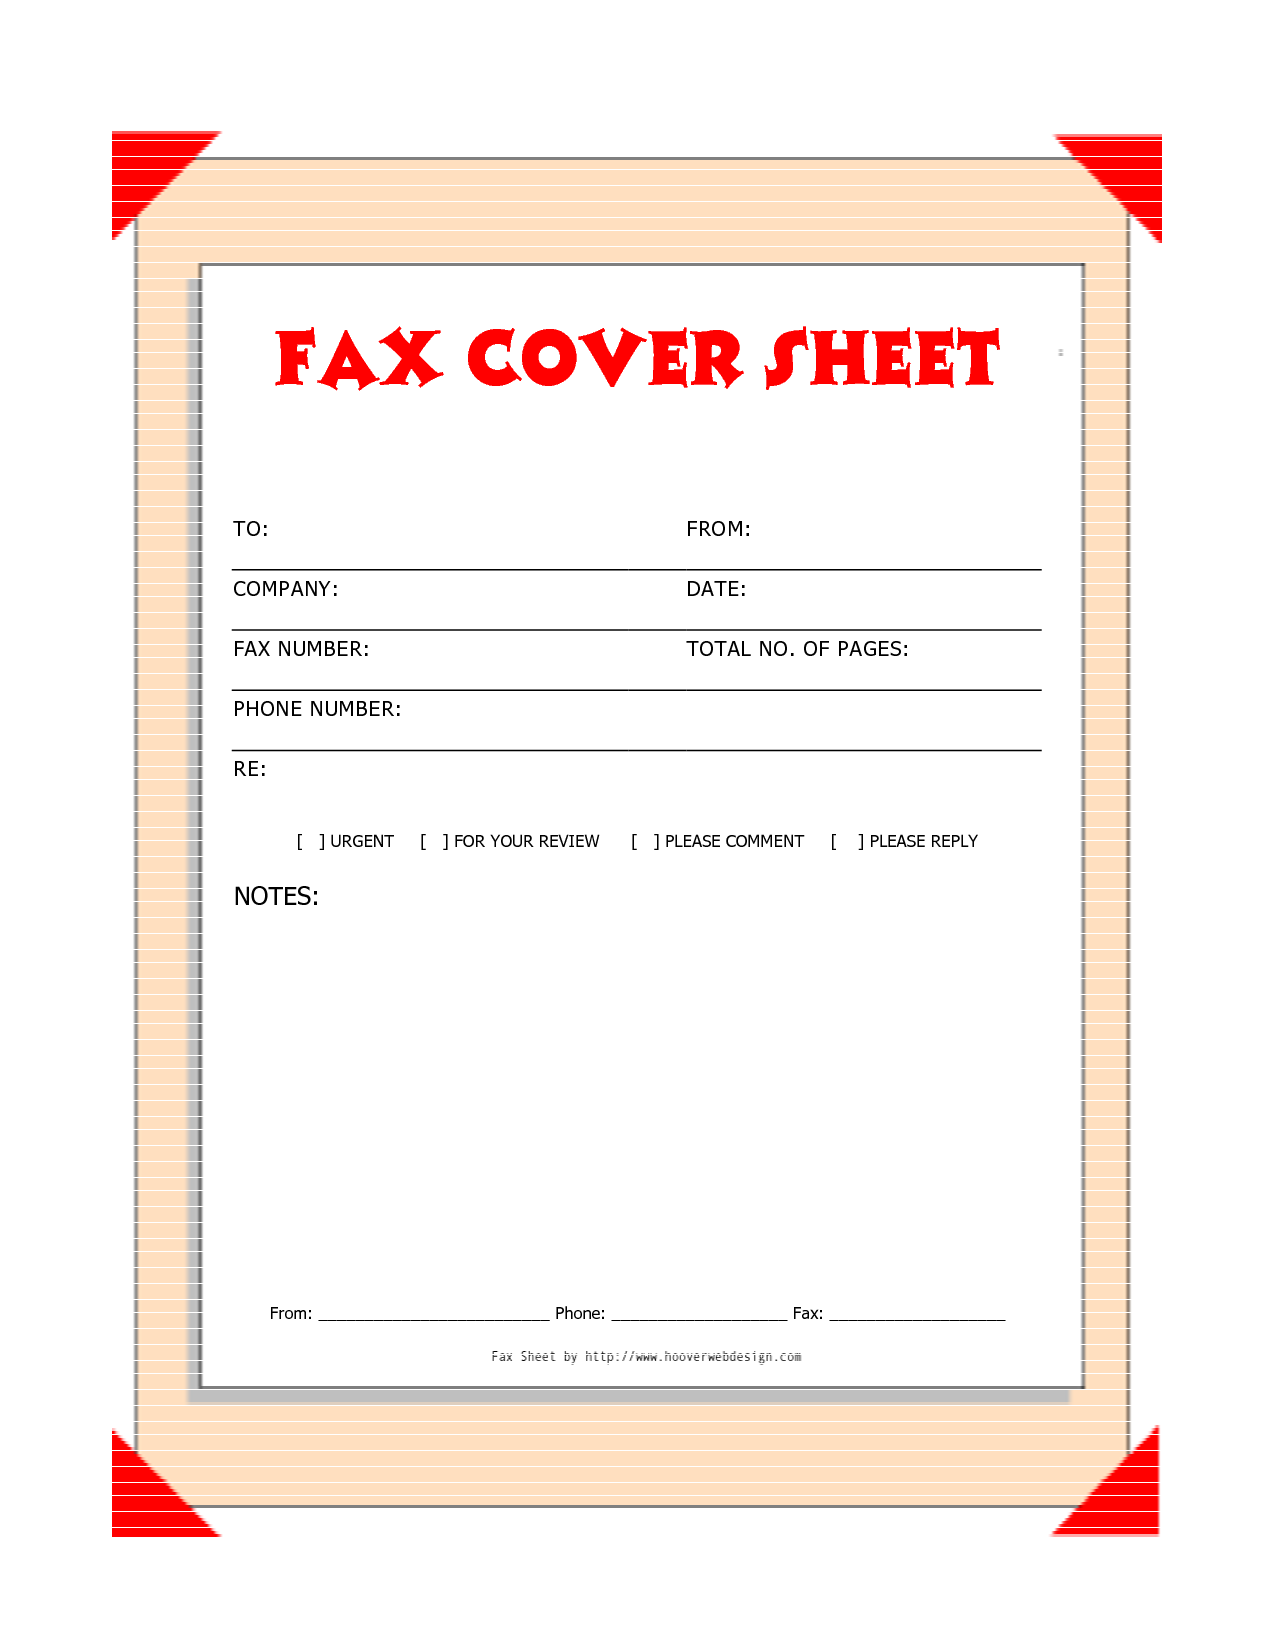 Free Downloads Fax Covers Sheets | Free Printable Fax Cover Sheet Template  Red   Download As  Fax Cover Letter Doc